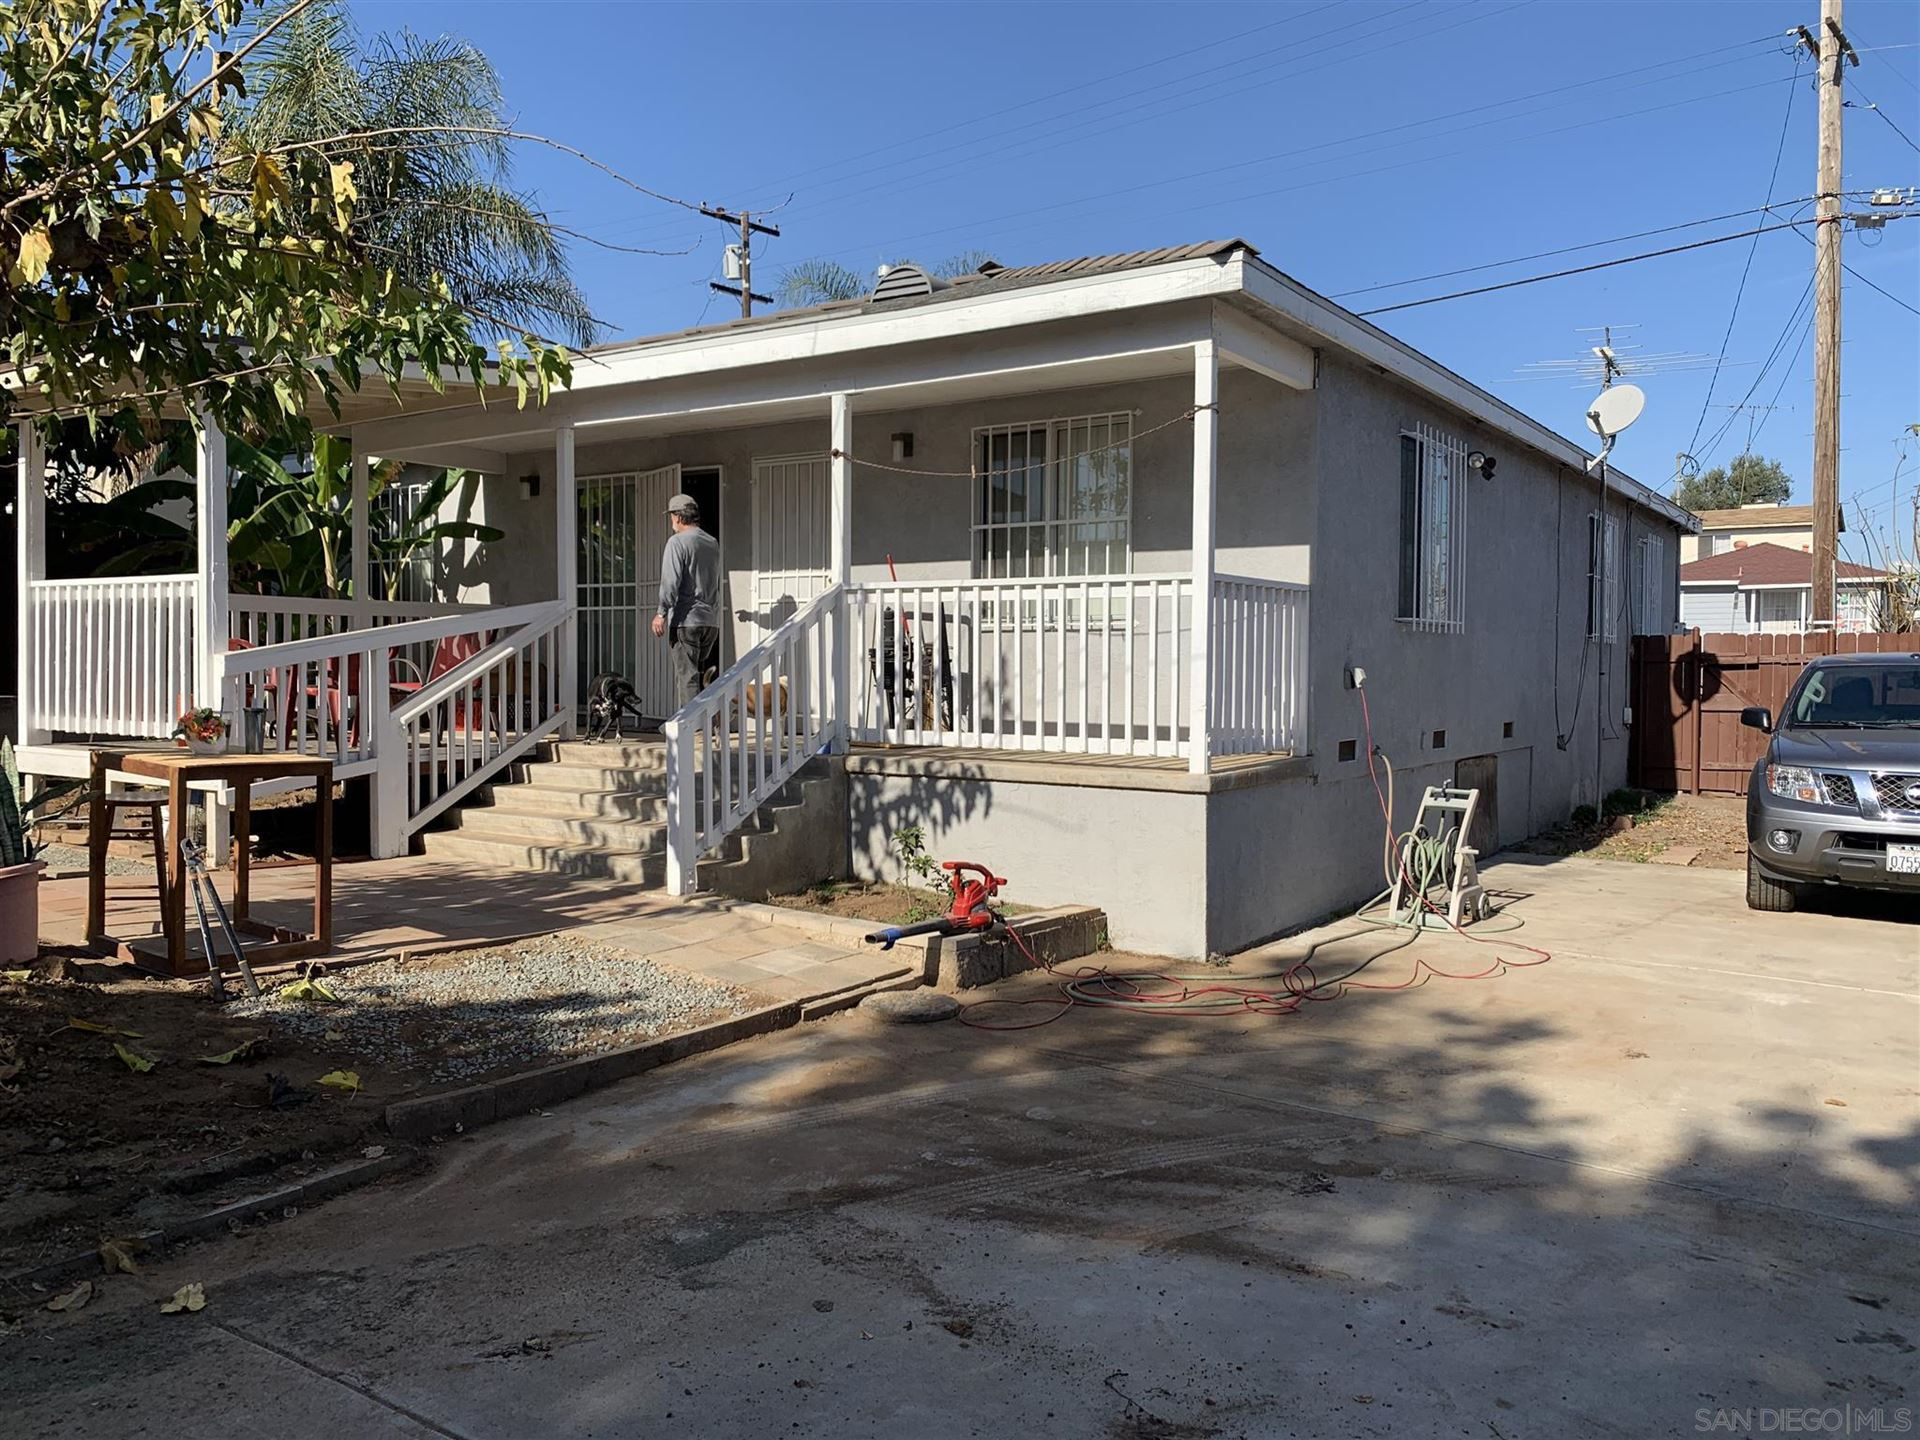 Photo of 2336 E 18Th St, National City, CA 91950 (MLS # 210006838)